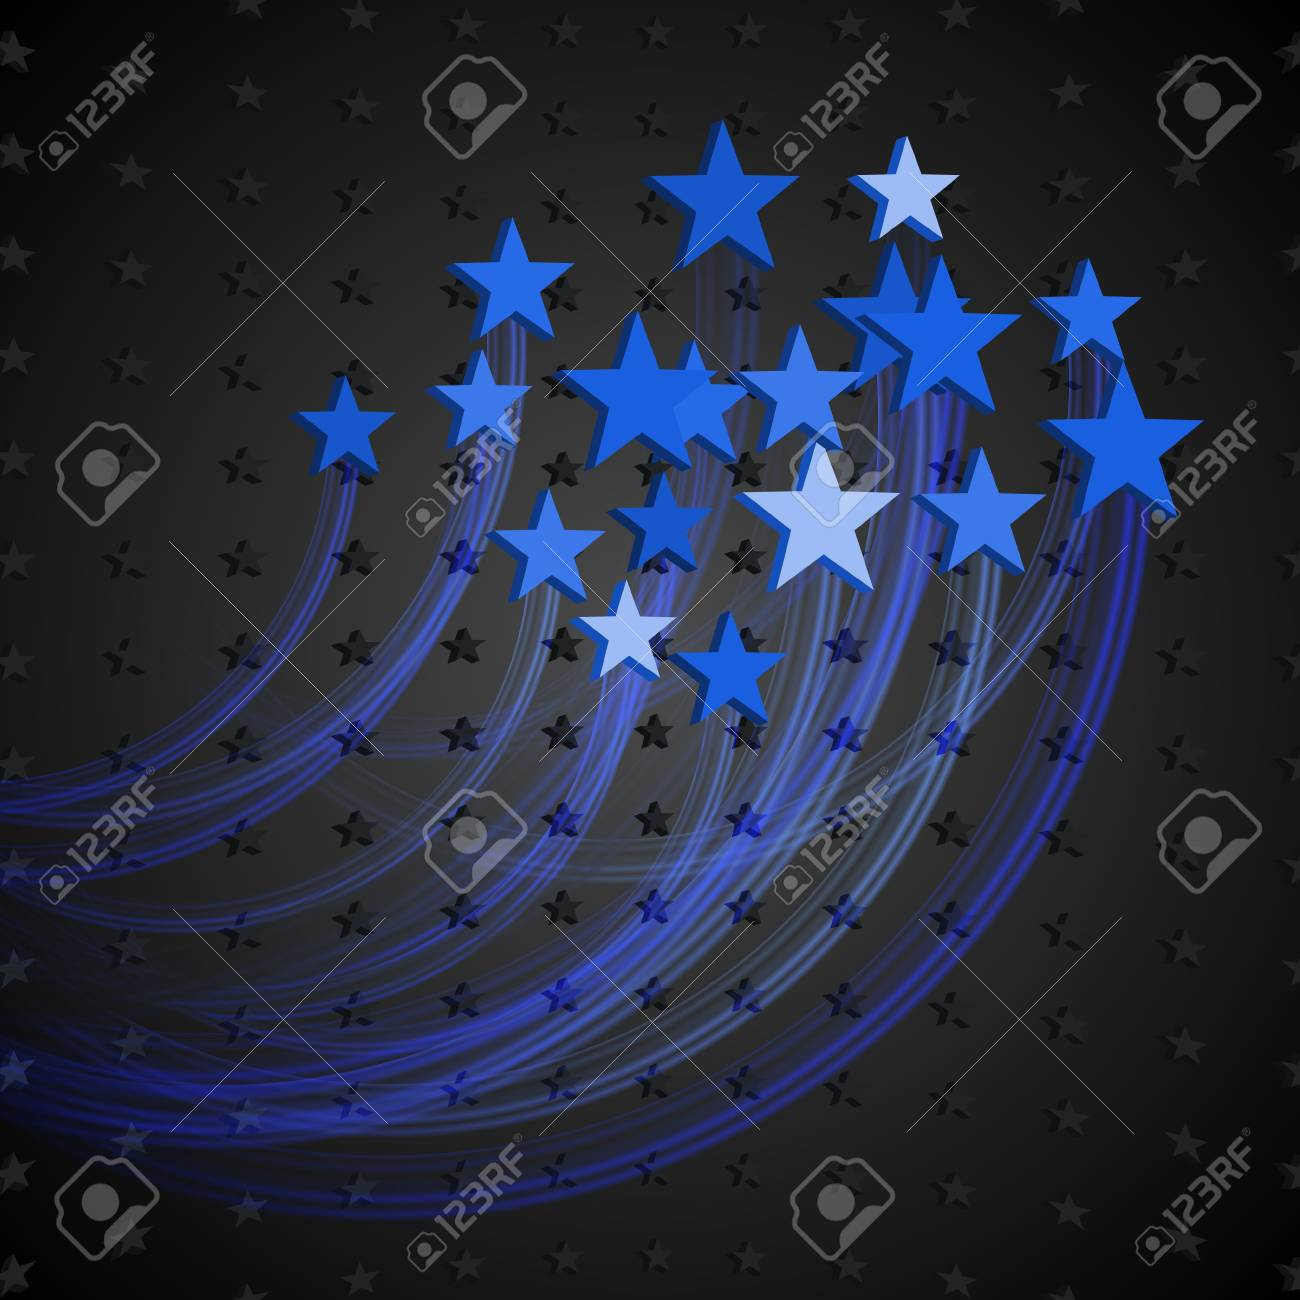 Abstract Background with Blue Stars  Styled fireworks Stock Vector - 18844821